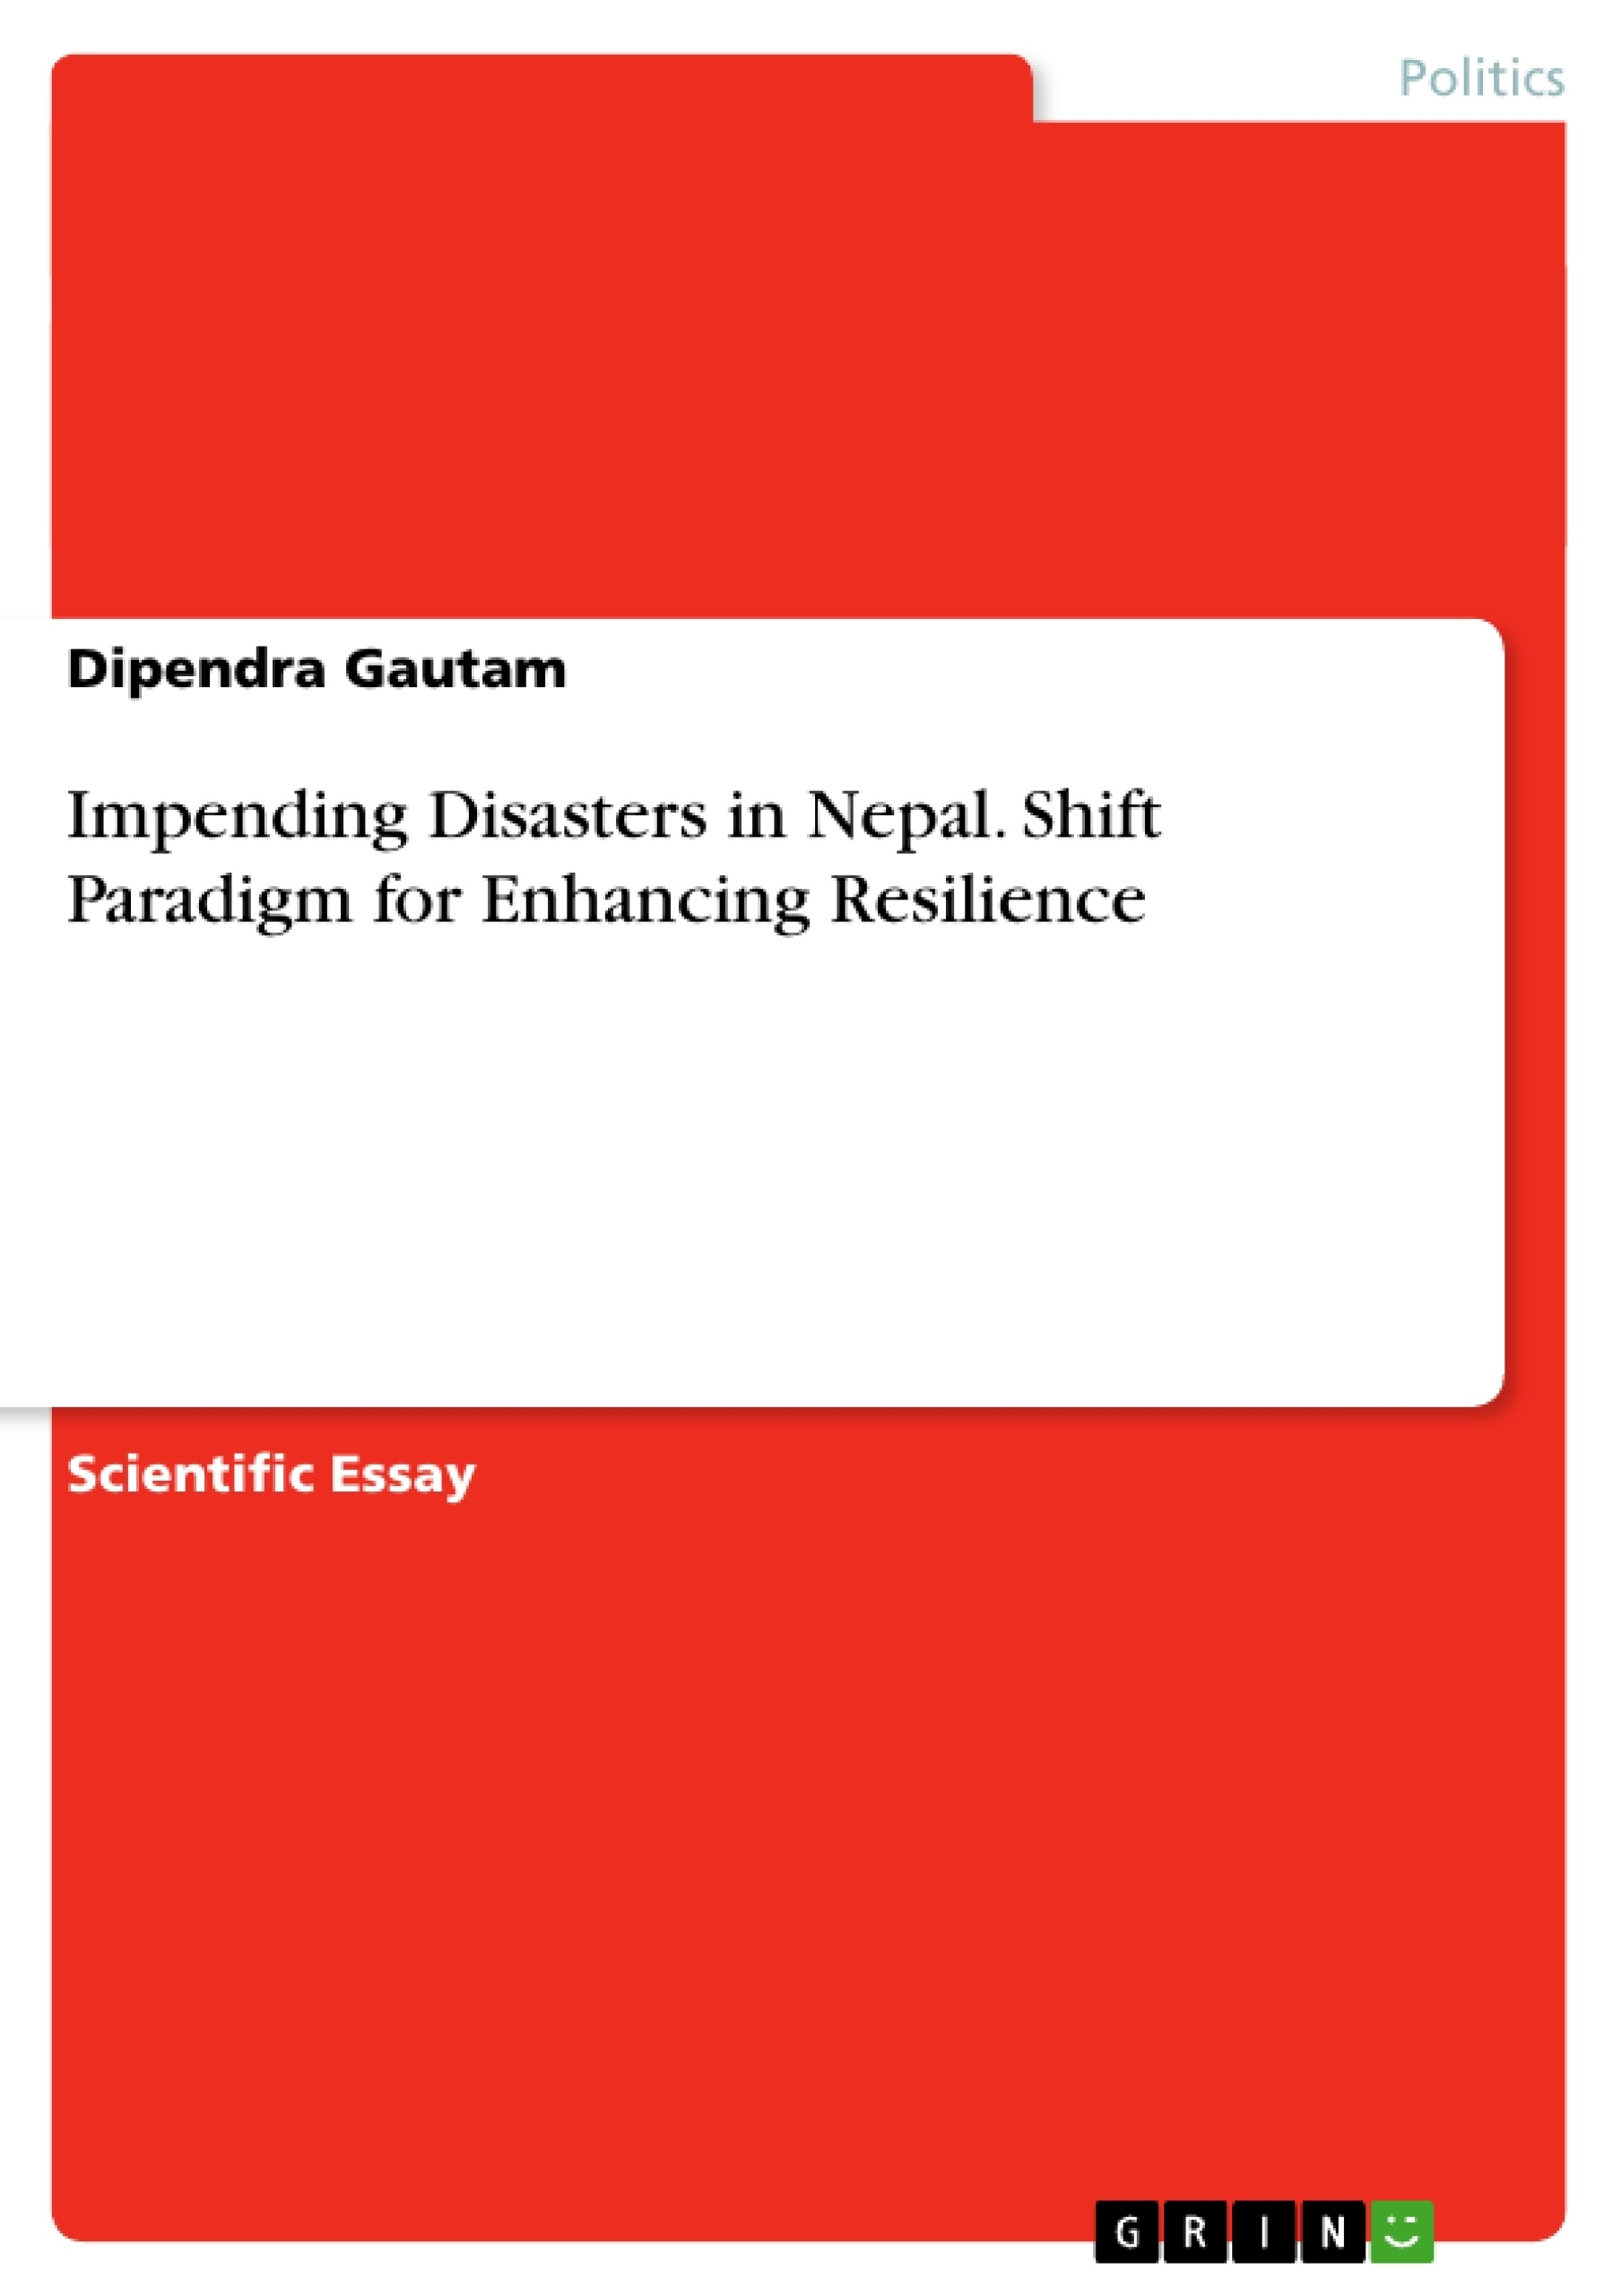 Title: Impending Disasters in Nepal. Shift Paradigm for Enhancing Resilience